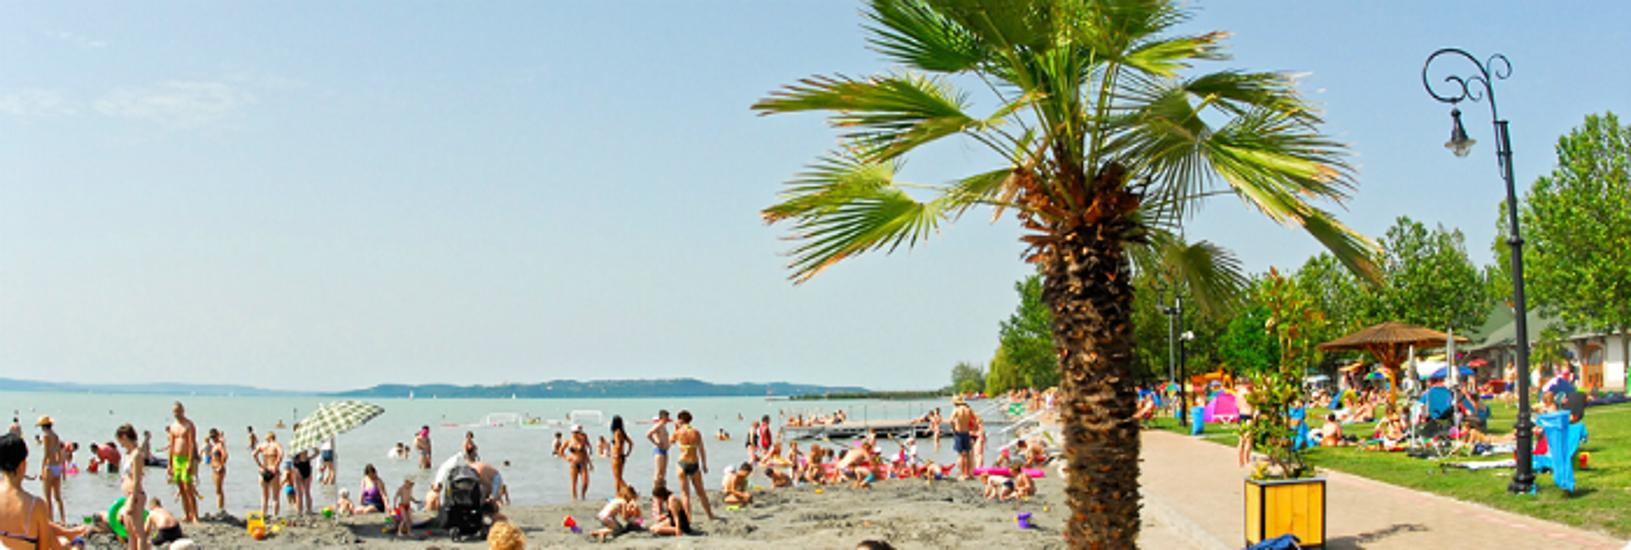 "Summer + Hungary = Balaton – The Best Beaches Around The ""Hungarian Sea"""